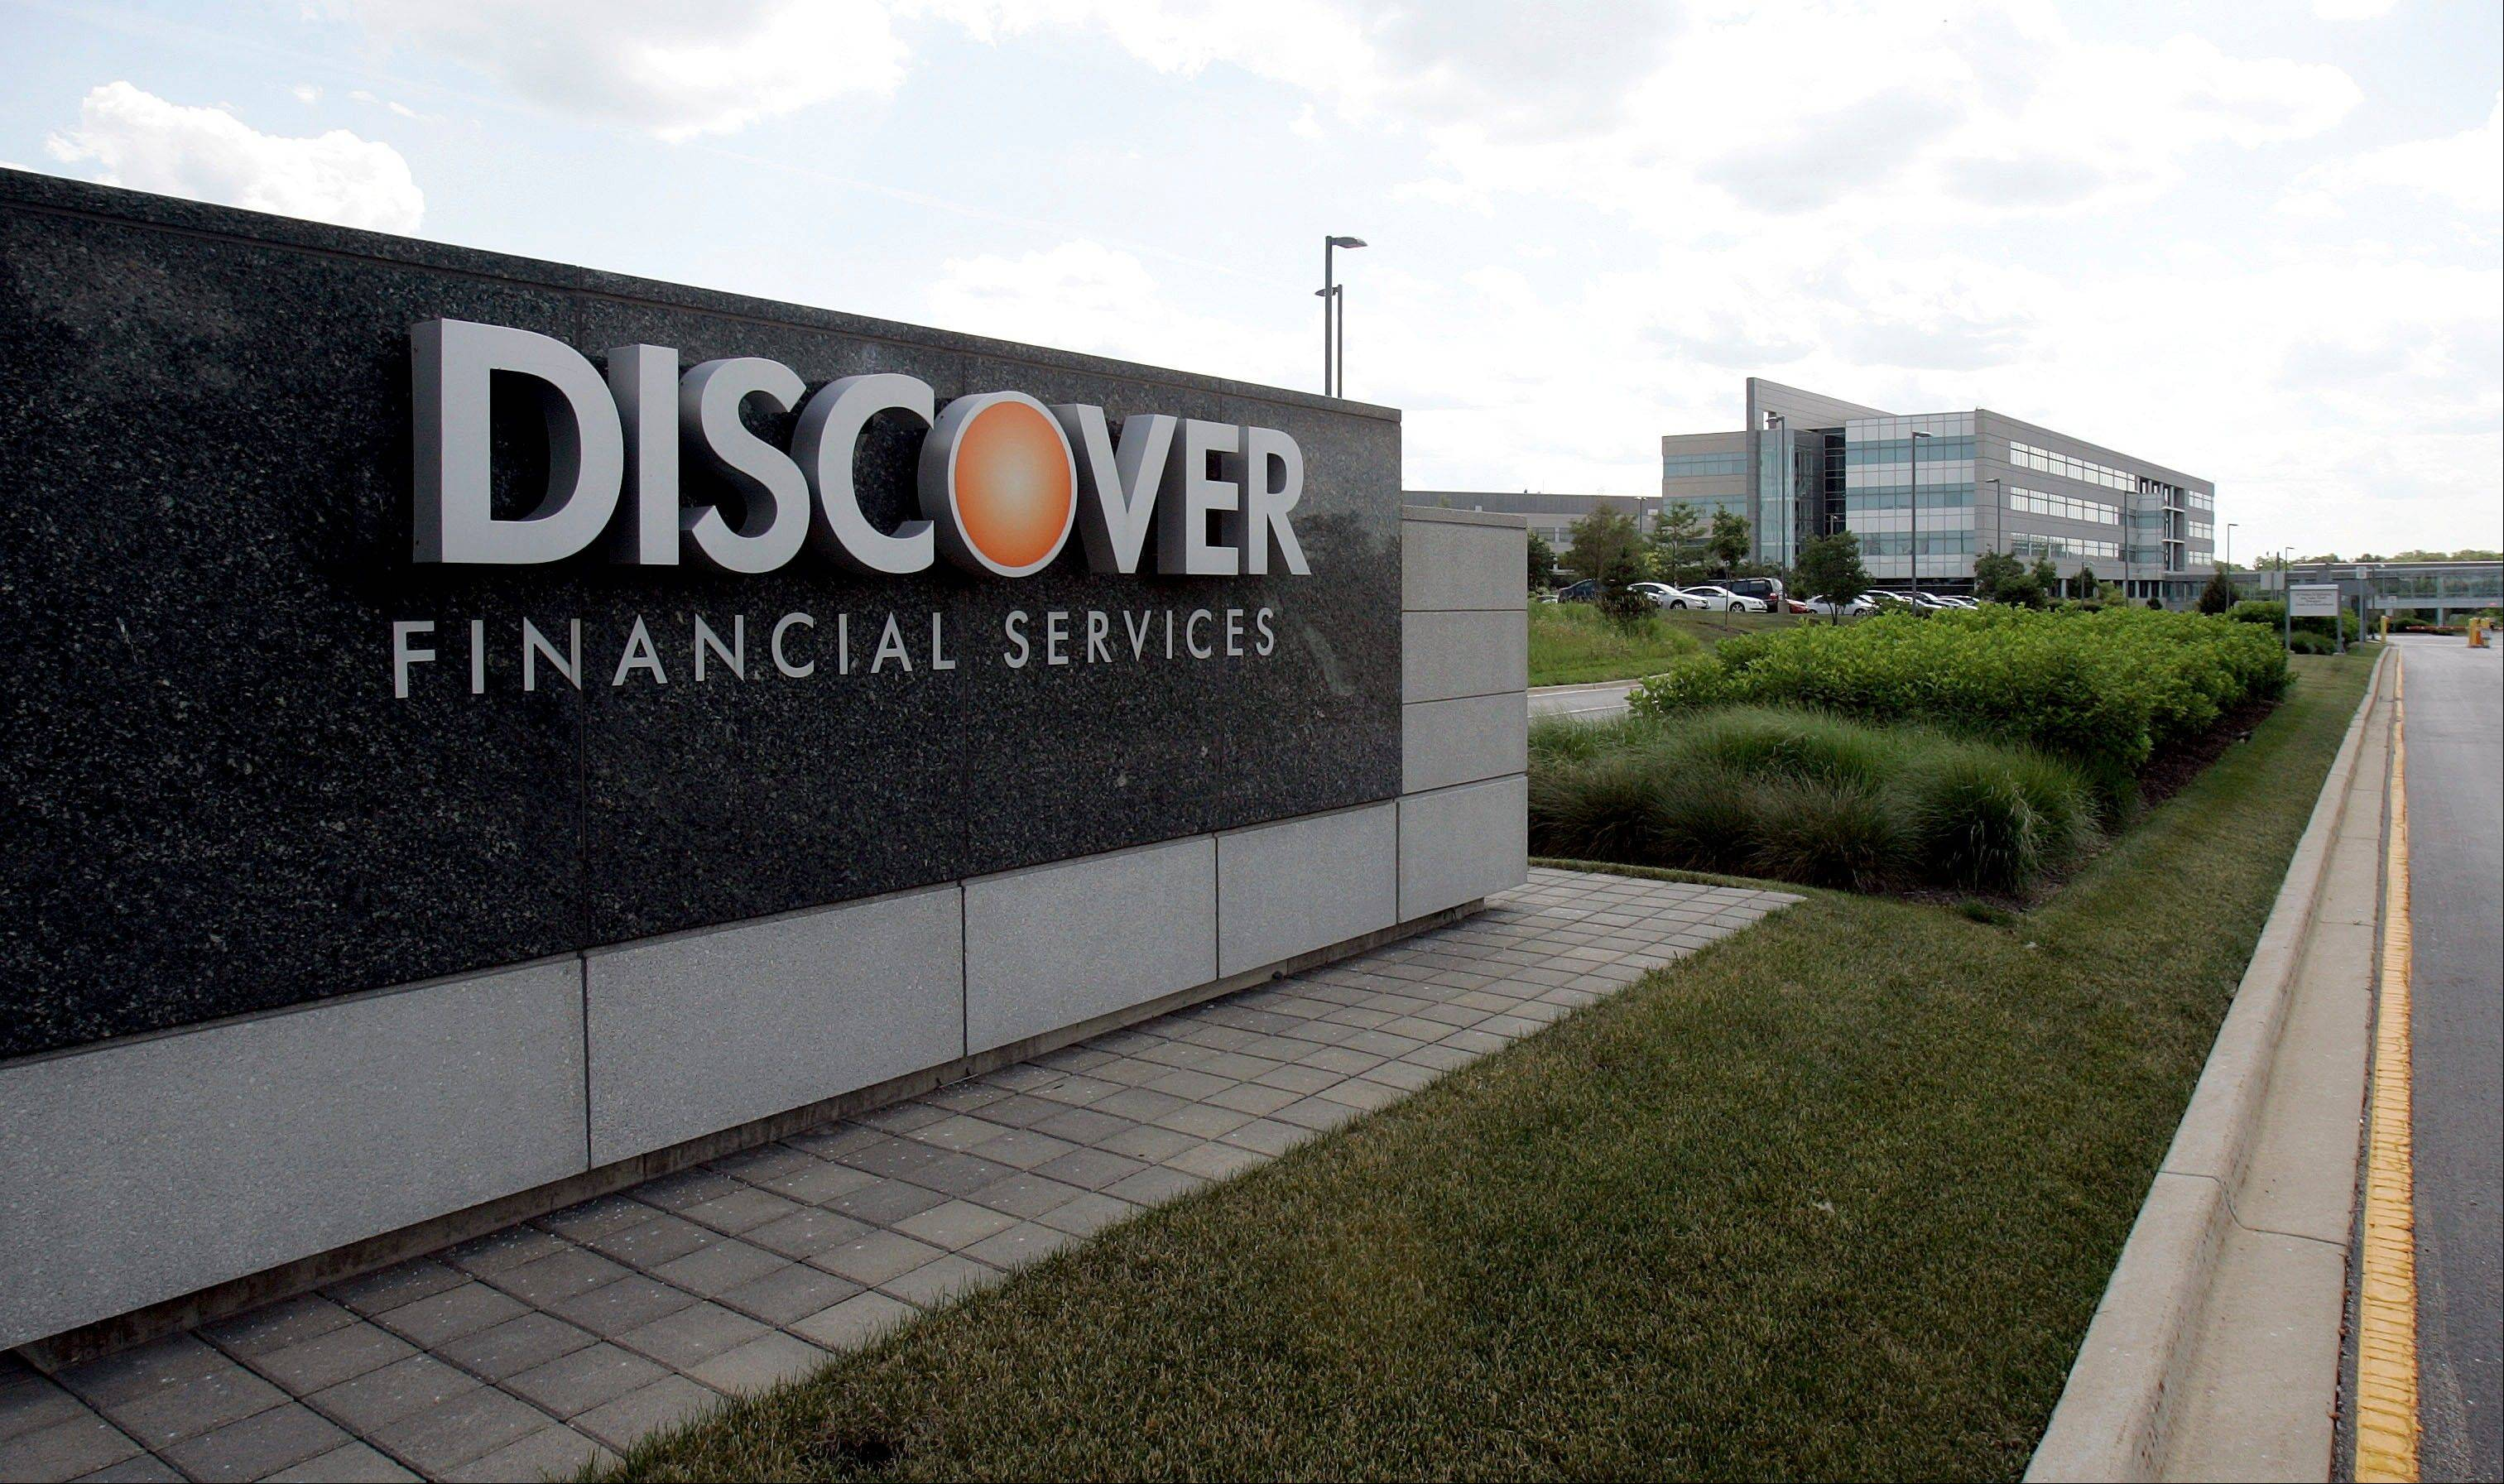 Riverwoods-based Discover Financial Services says its first-quarter net income rose 2 percent, boosted by loan growth.